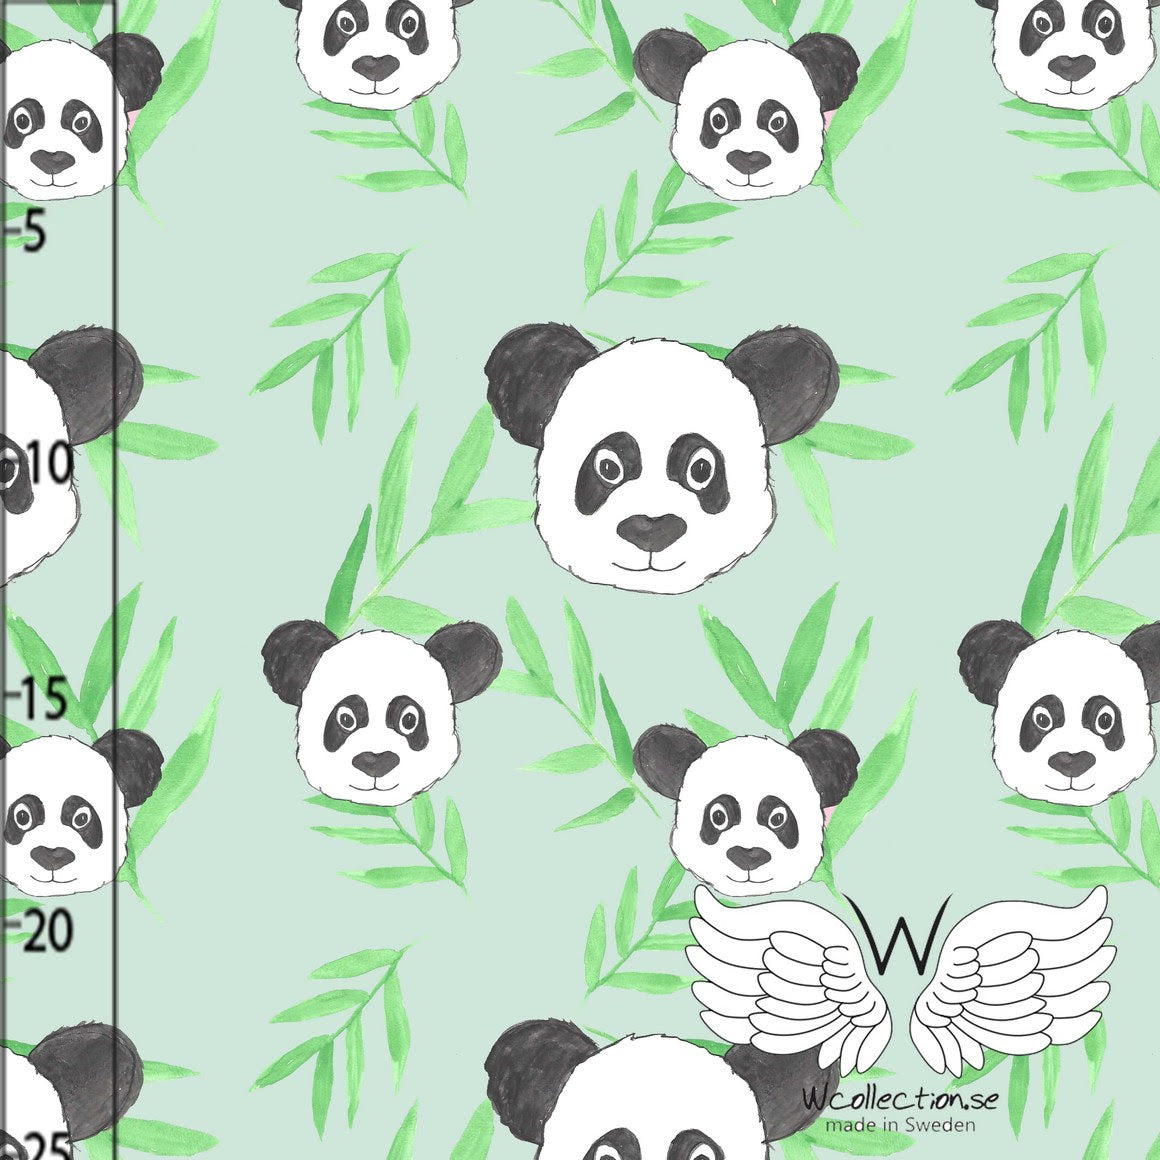 Panda Organic Jersey, Green by Wcollection